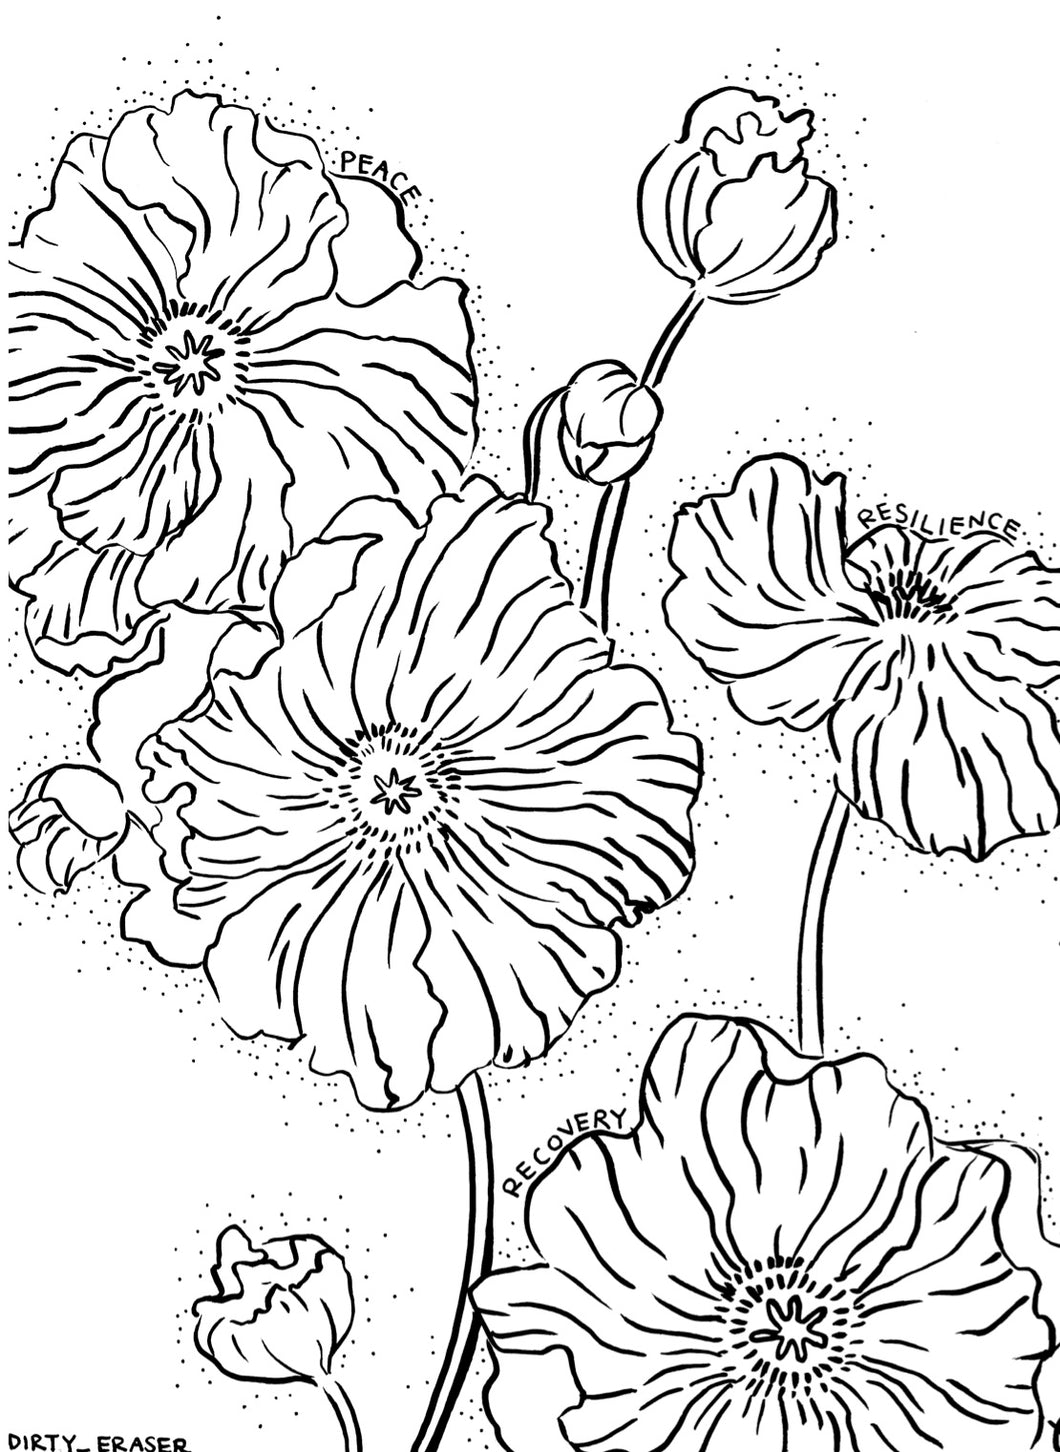 FREE COLORING PAGE - POPPY